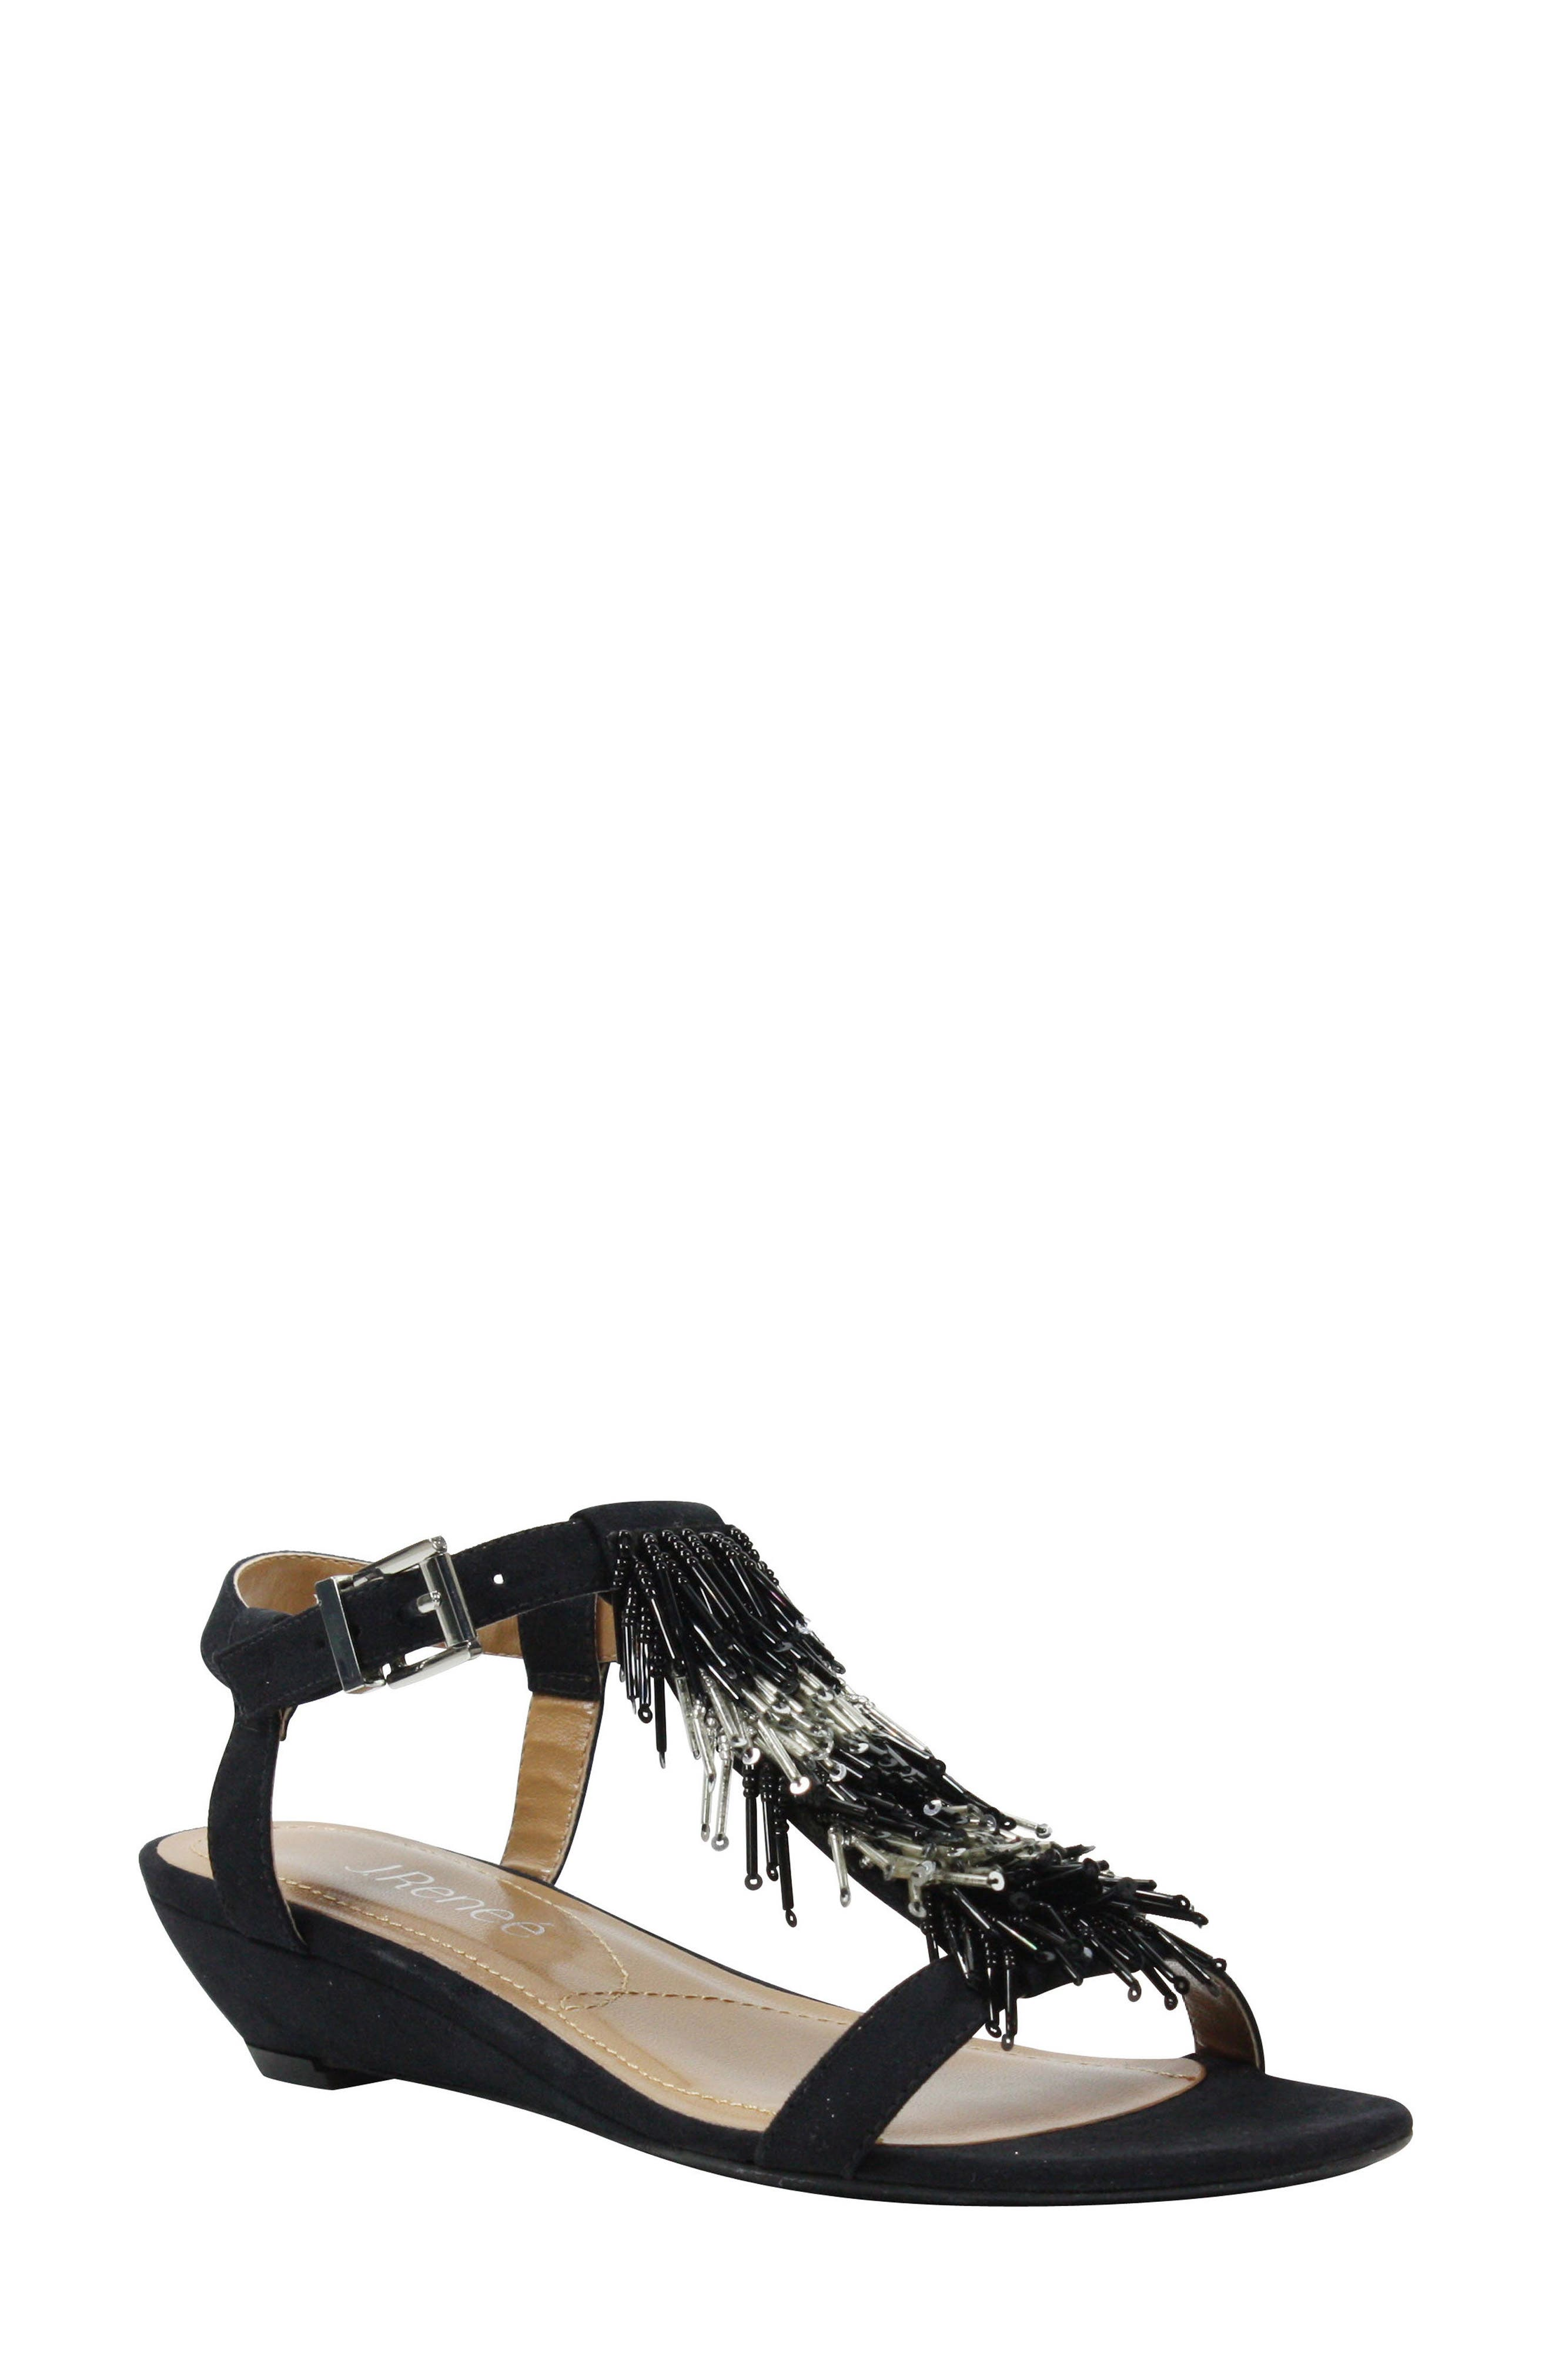 Alessa Sandal,                         Main,                         color, BLACK/ SILVER FABRIC